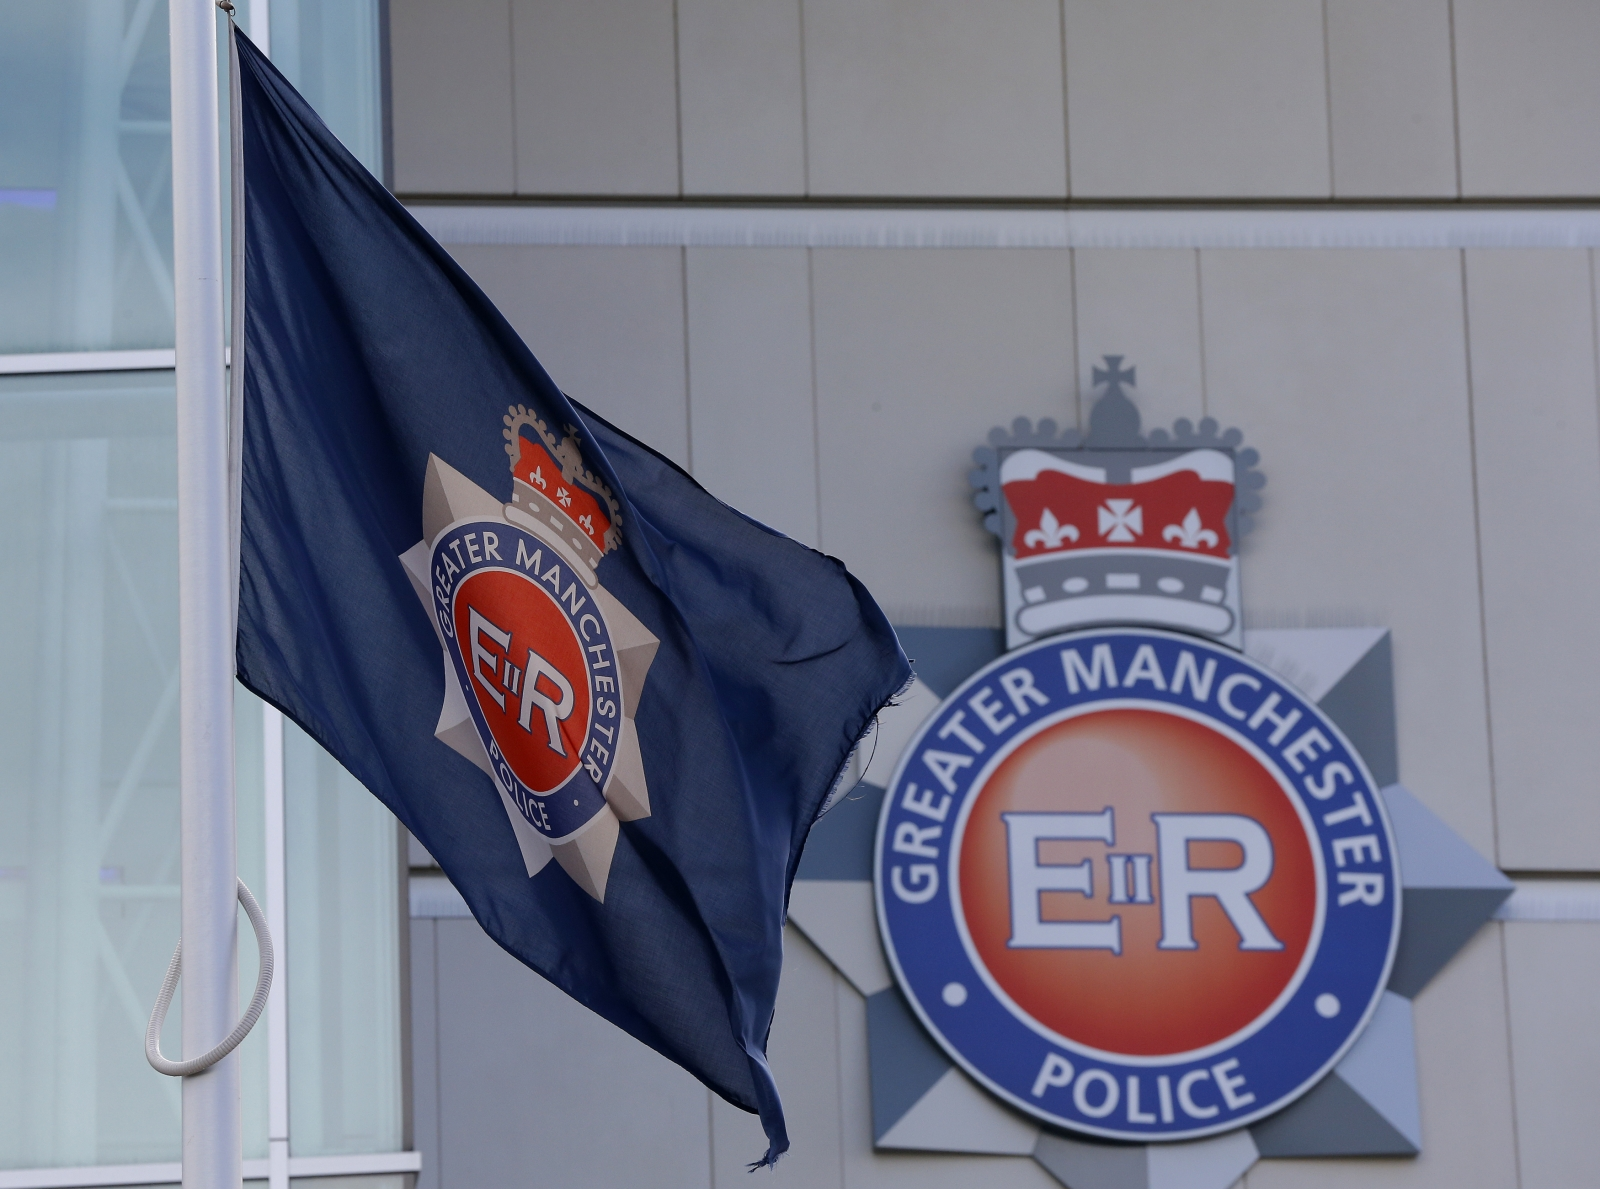 UK: Manchester boys aged 7 and 8 accused of rape